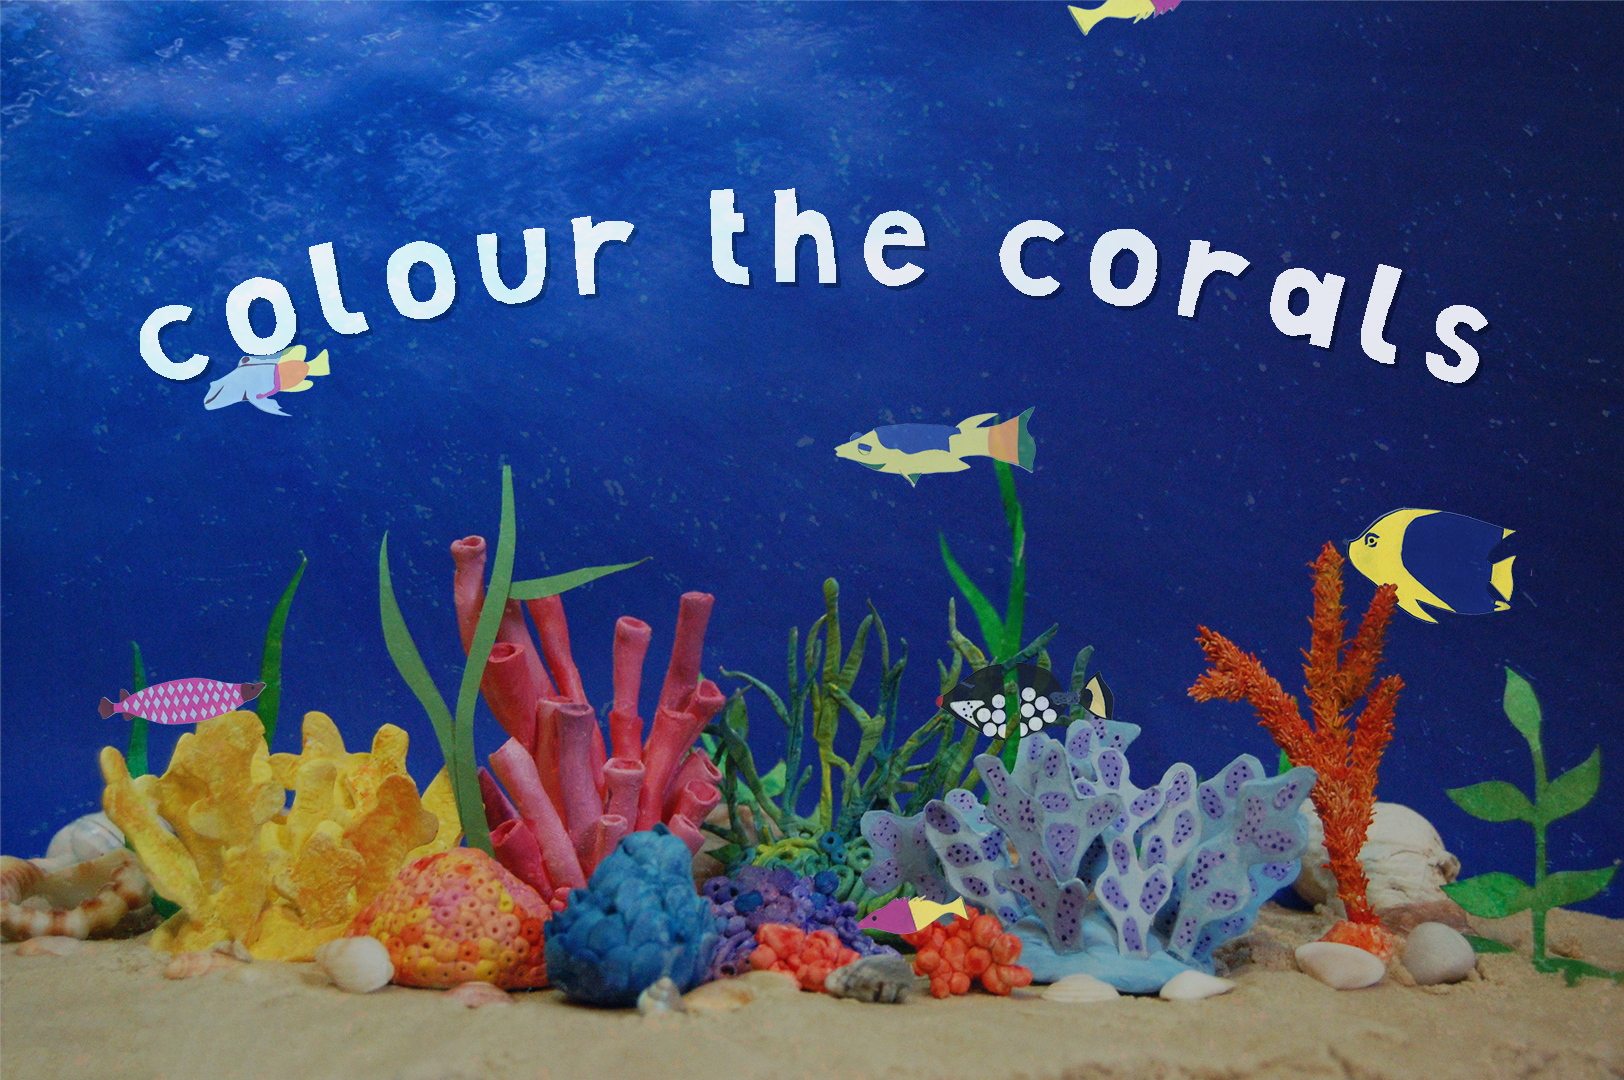 A depiction of a vibrant coral reef with paper fish swimming past. The words 'Colour the corals' are cut out in paper.